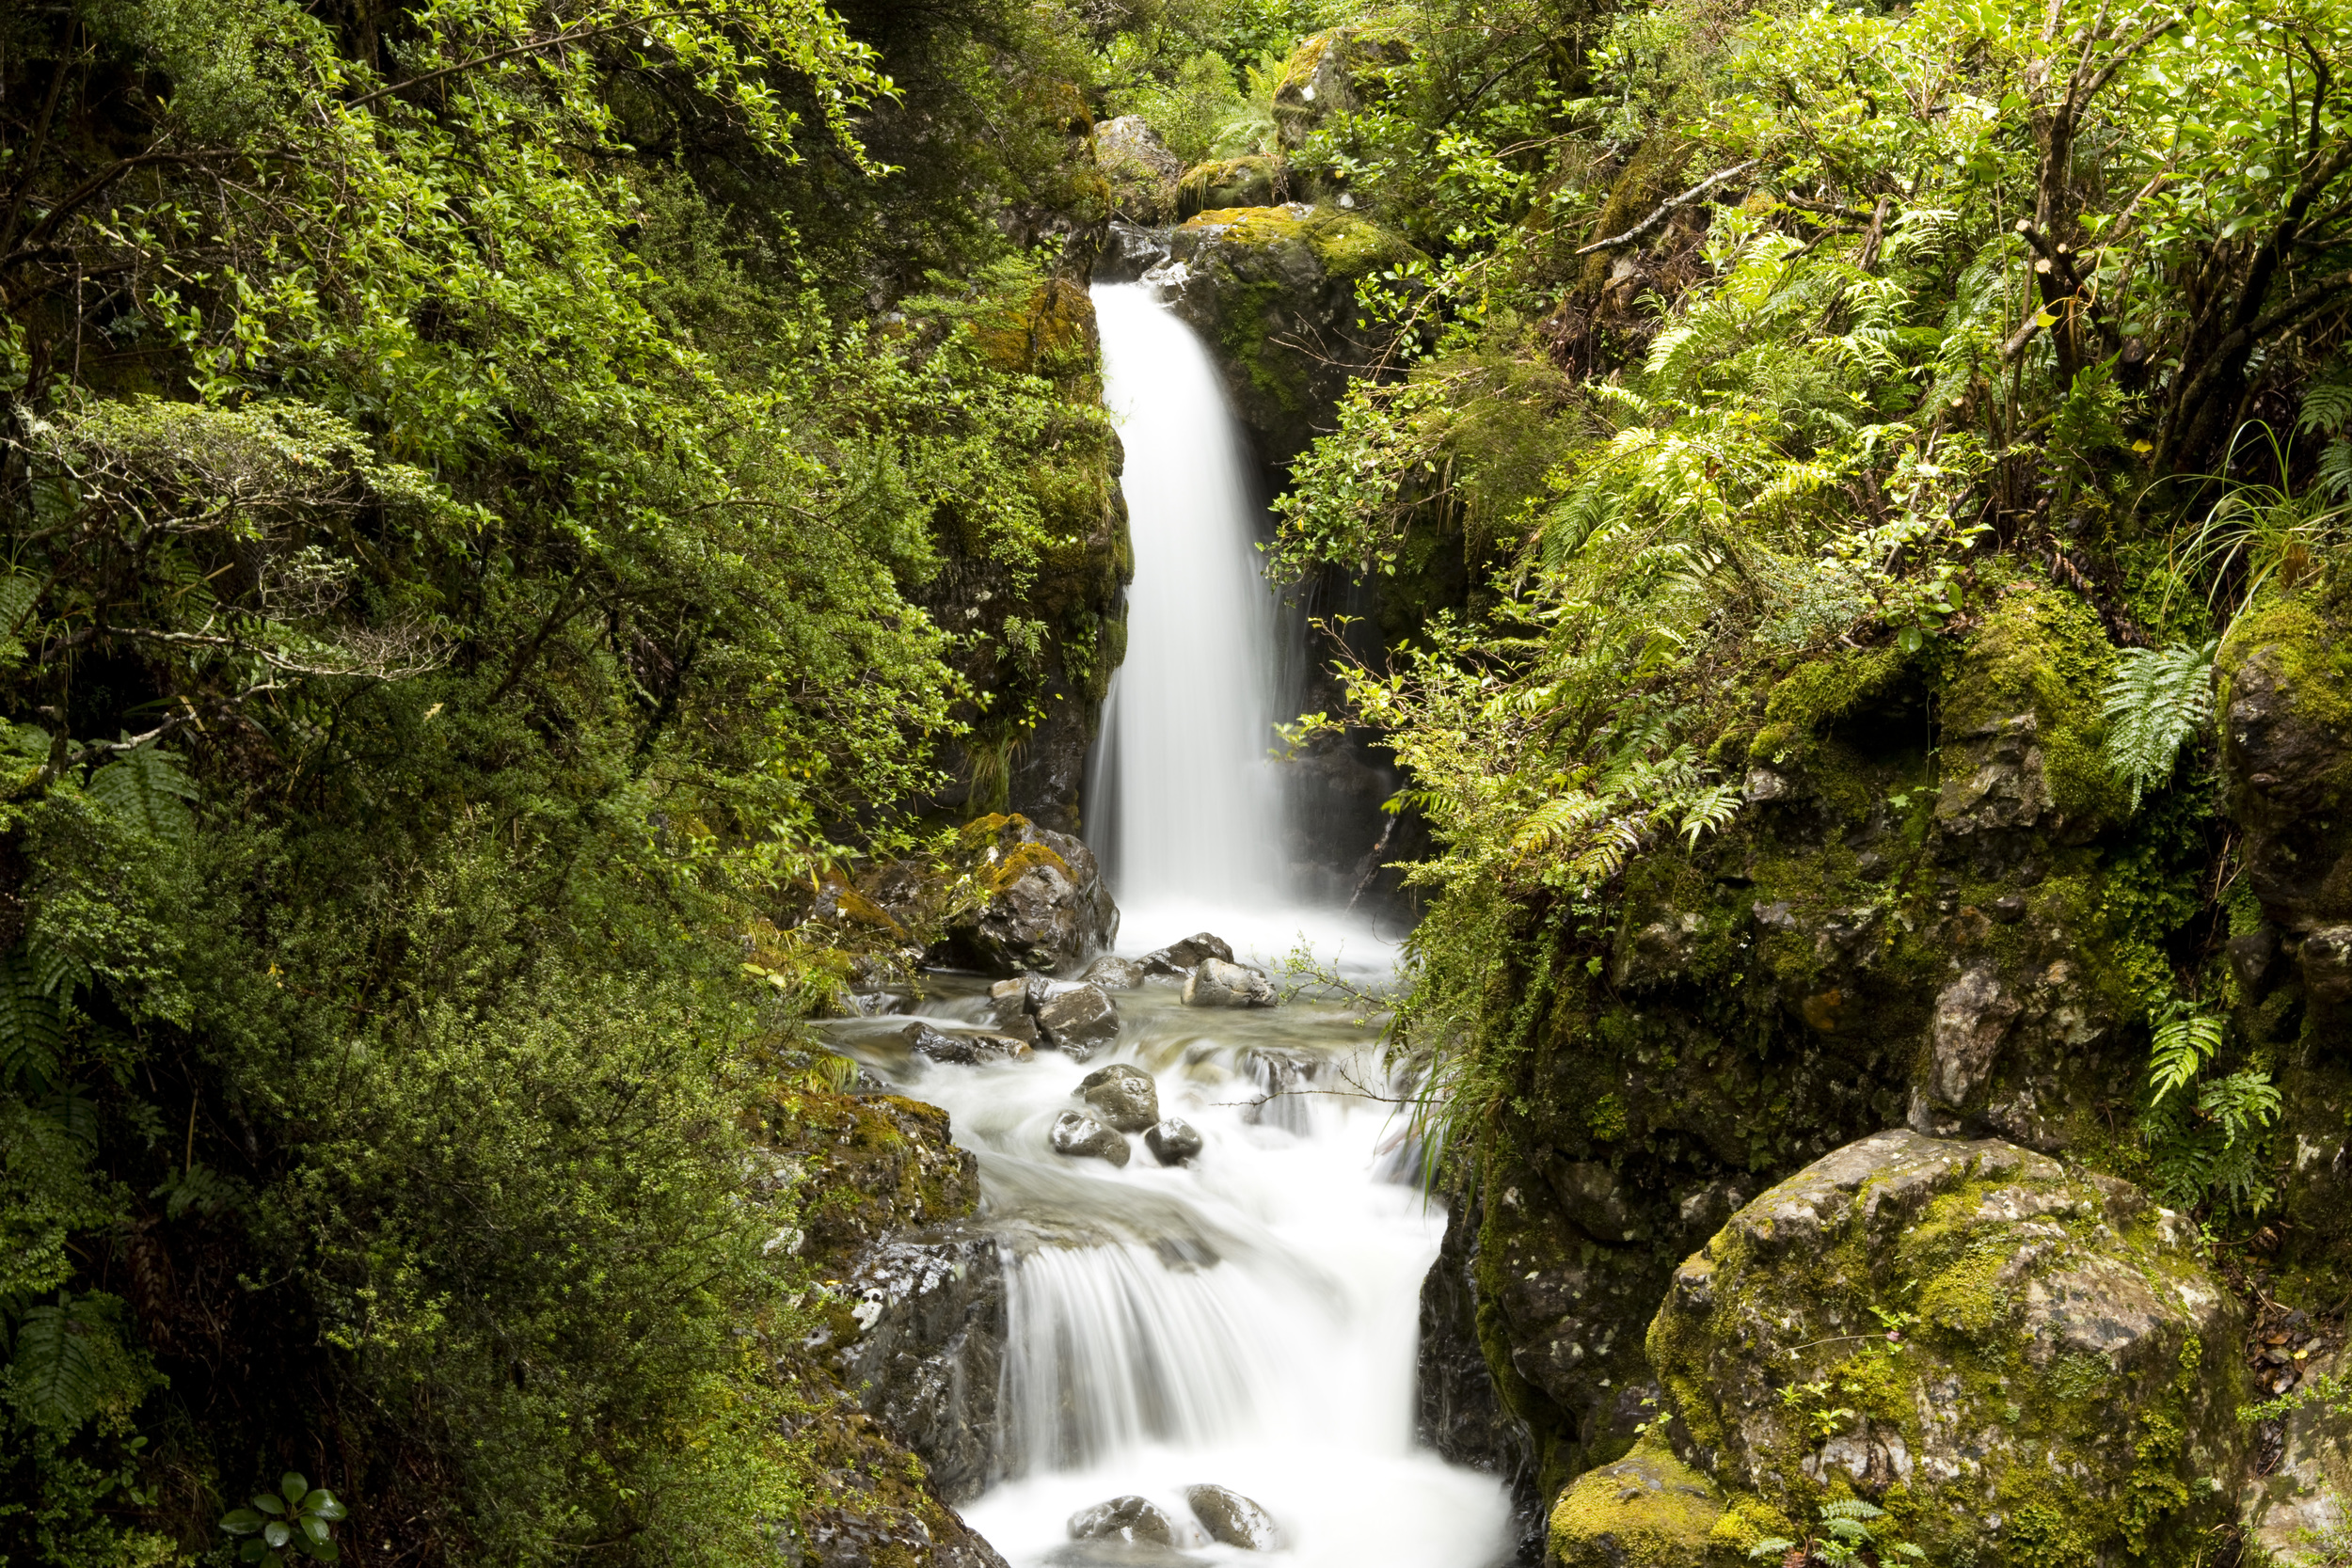 Another waterfall from my travels, near Arthur's Pass, NZ.